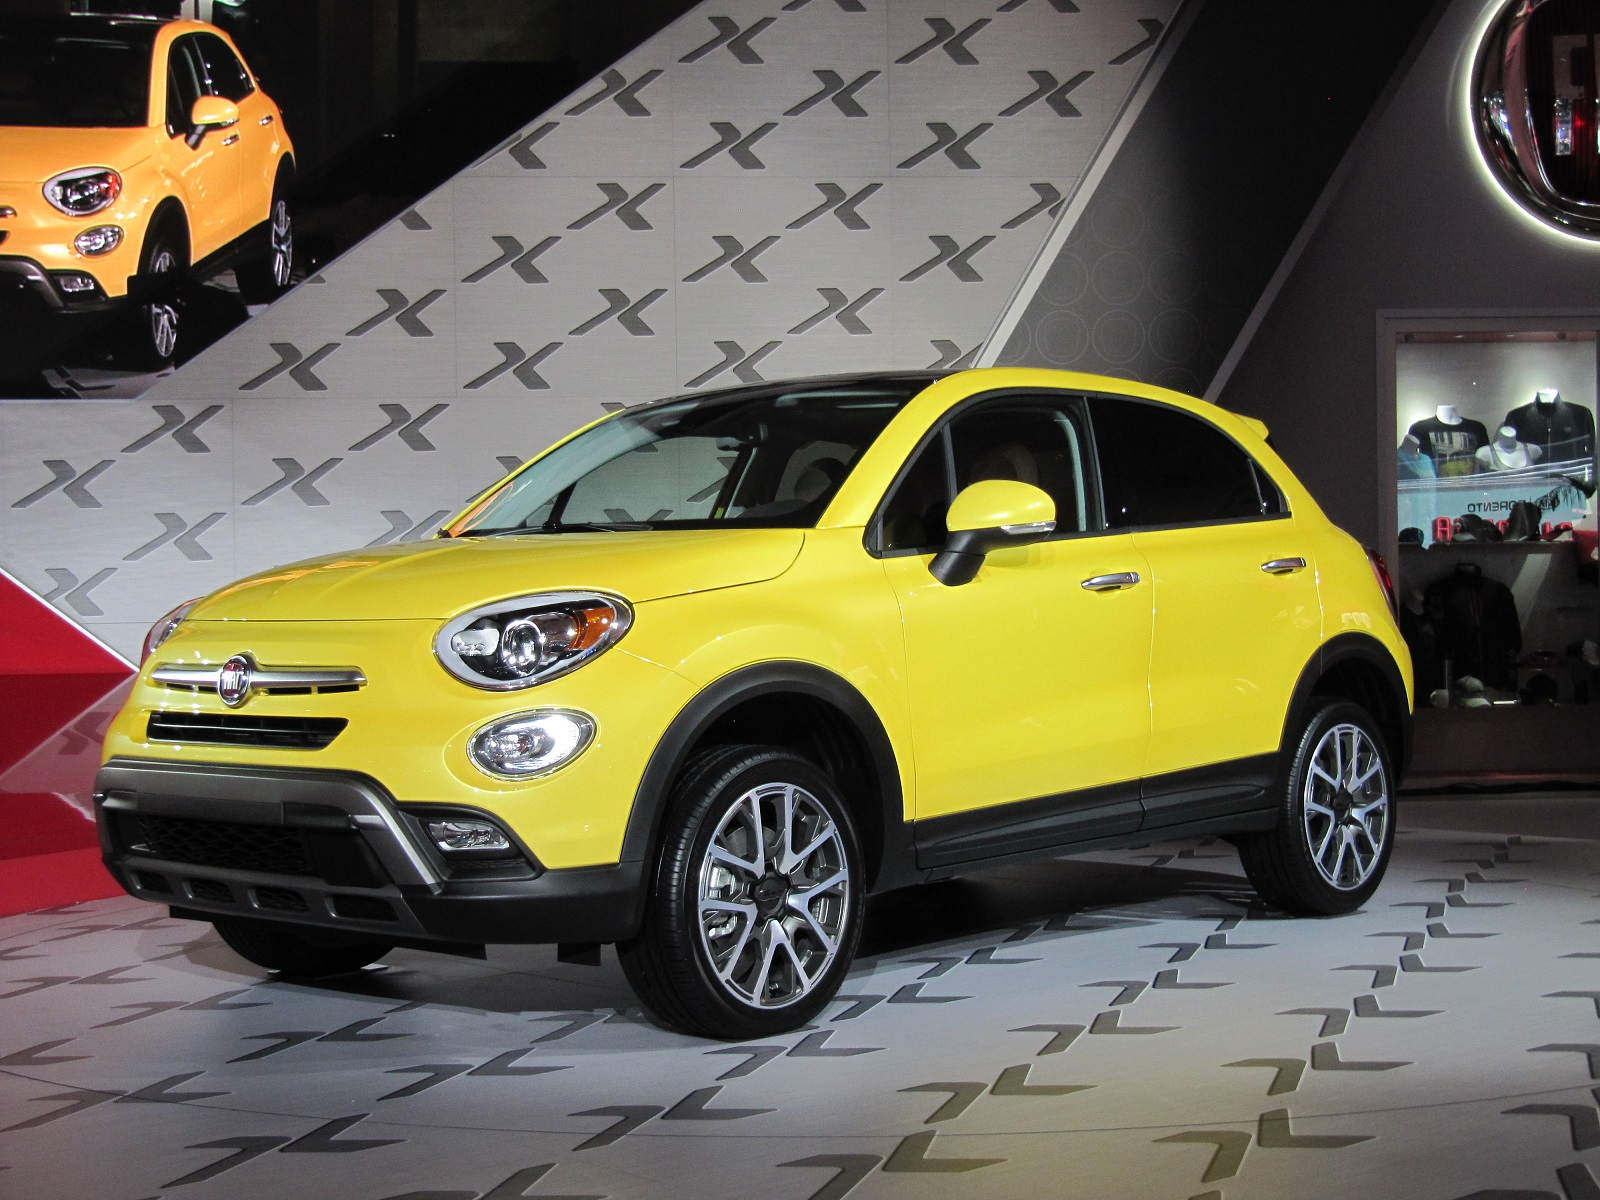 Awesome 2016fiat500xintroducedat2014losangelesautoshow_100491033_h